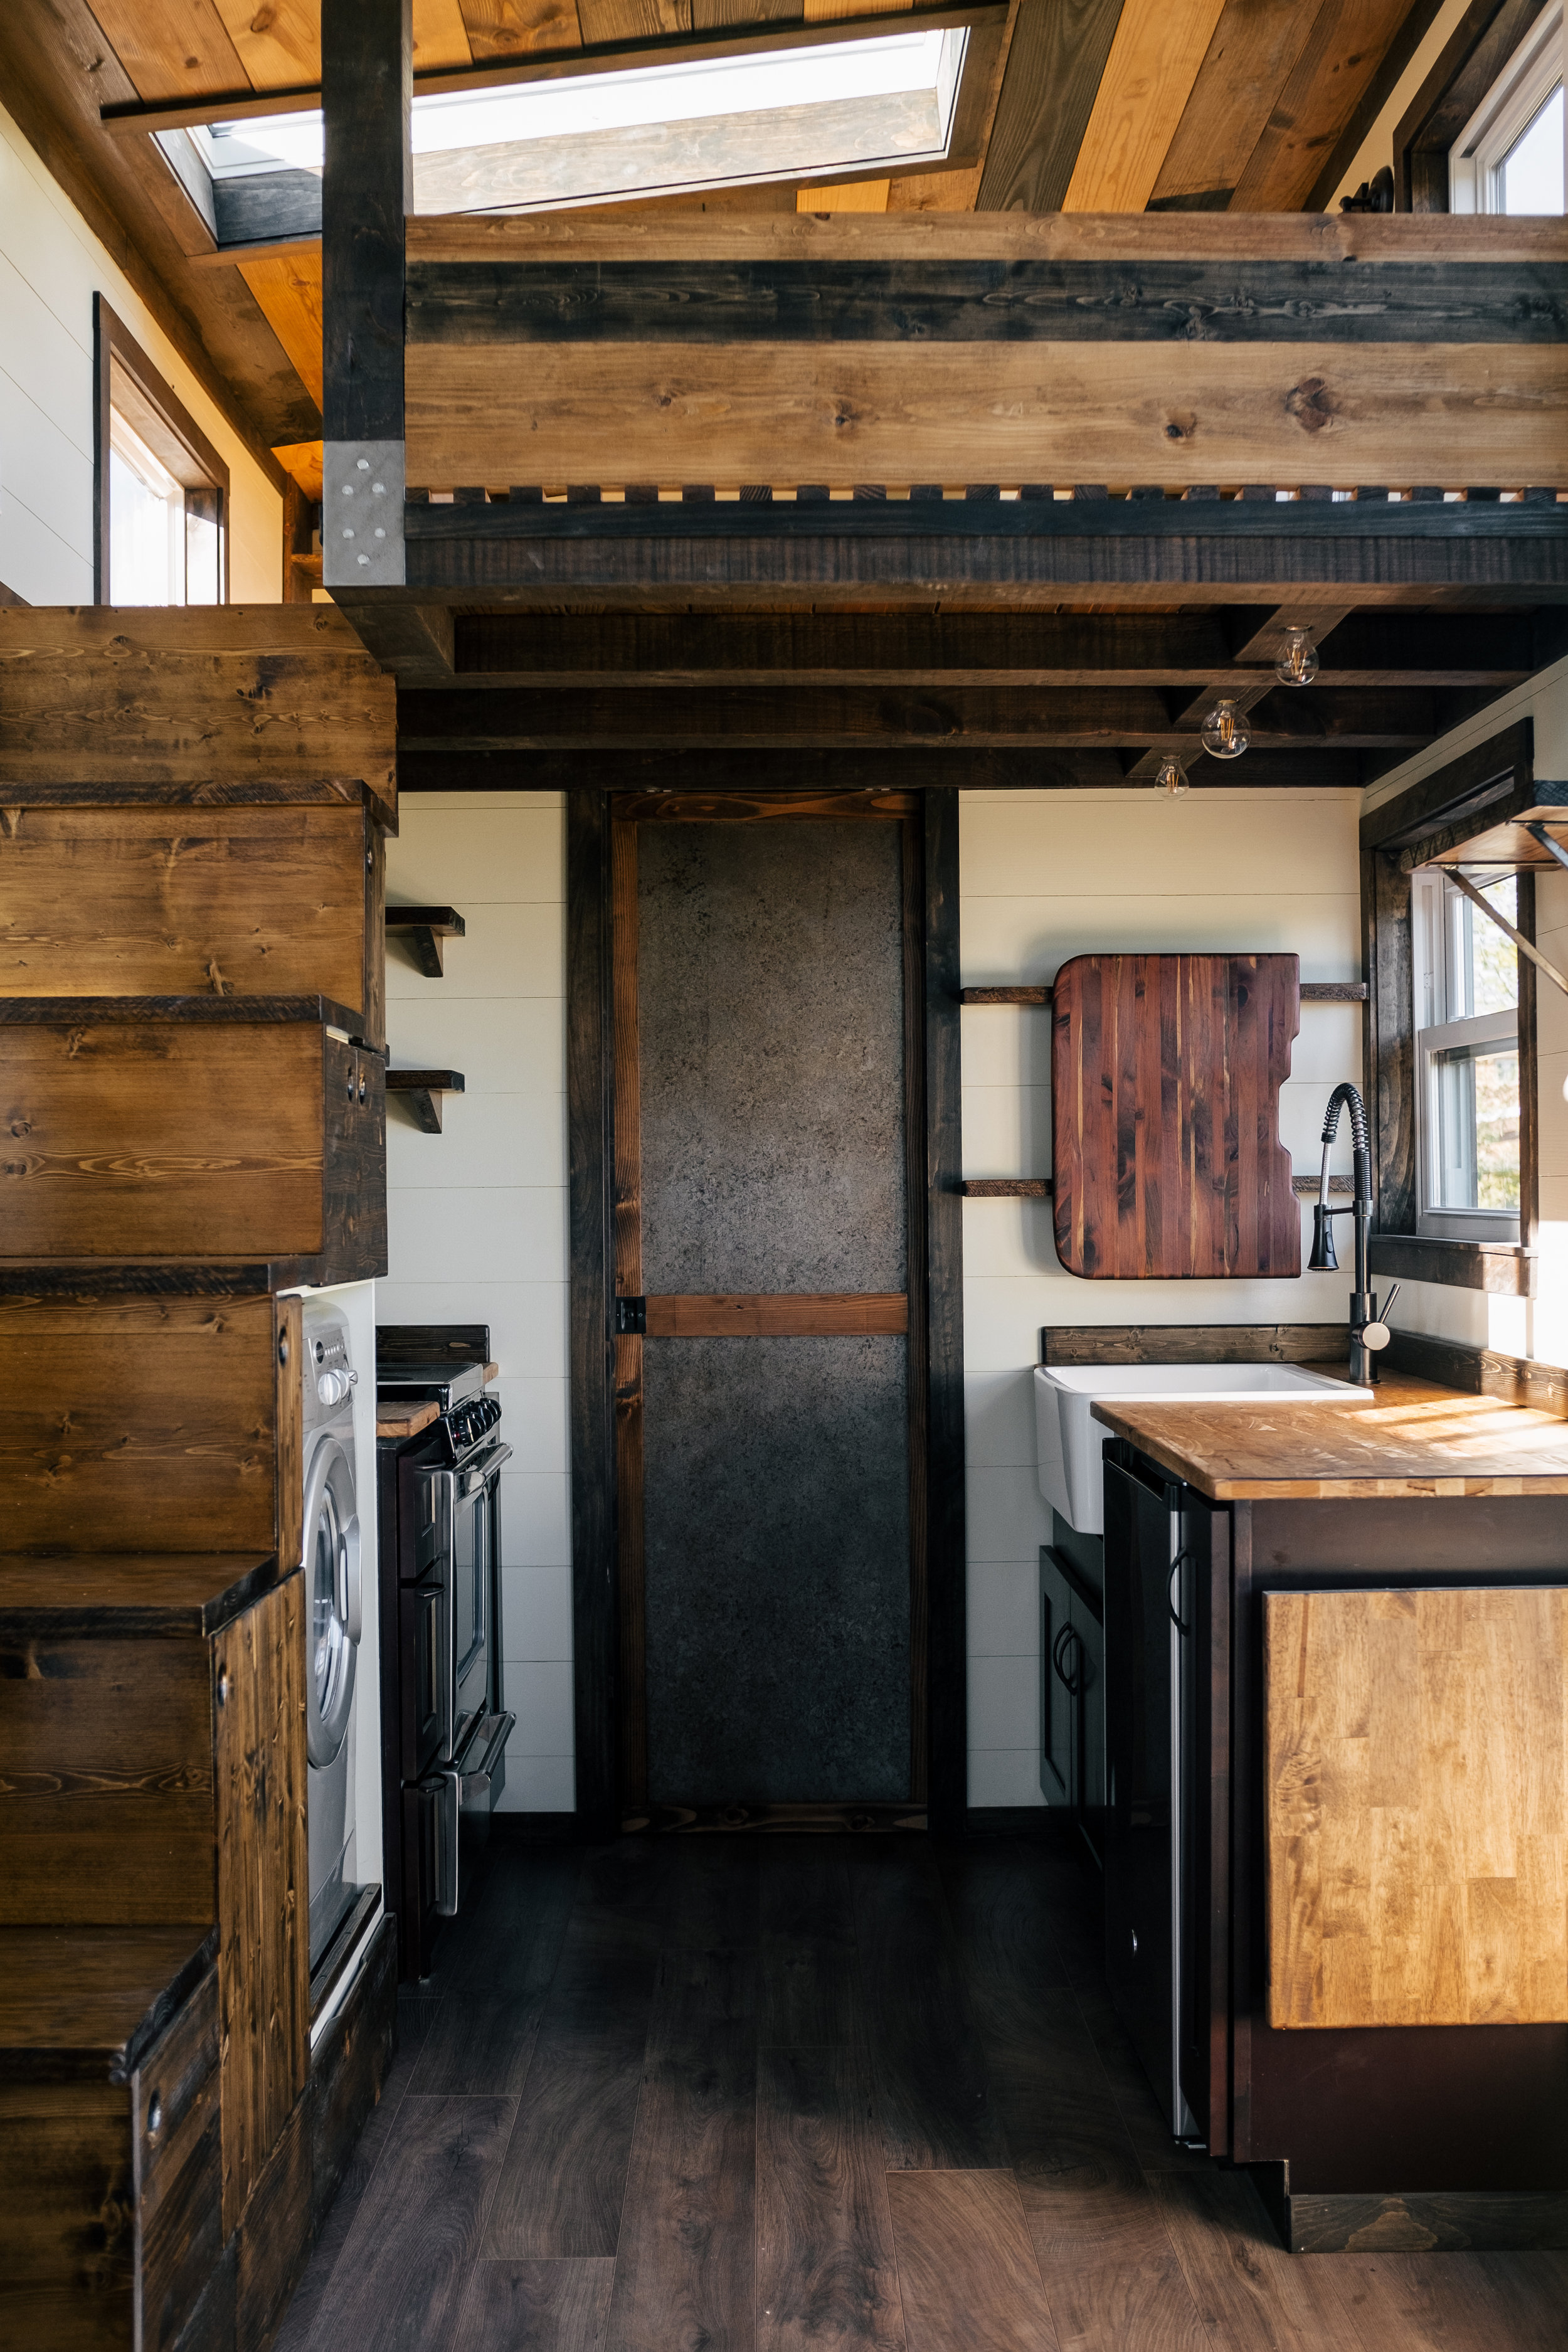 The Silhouette by Wind River Tiny Homes -shaker style cabinets, farmhouse sink, cedar sink cutting board, fold down table, storage stairs, patina steel pocket door